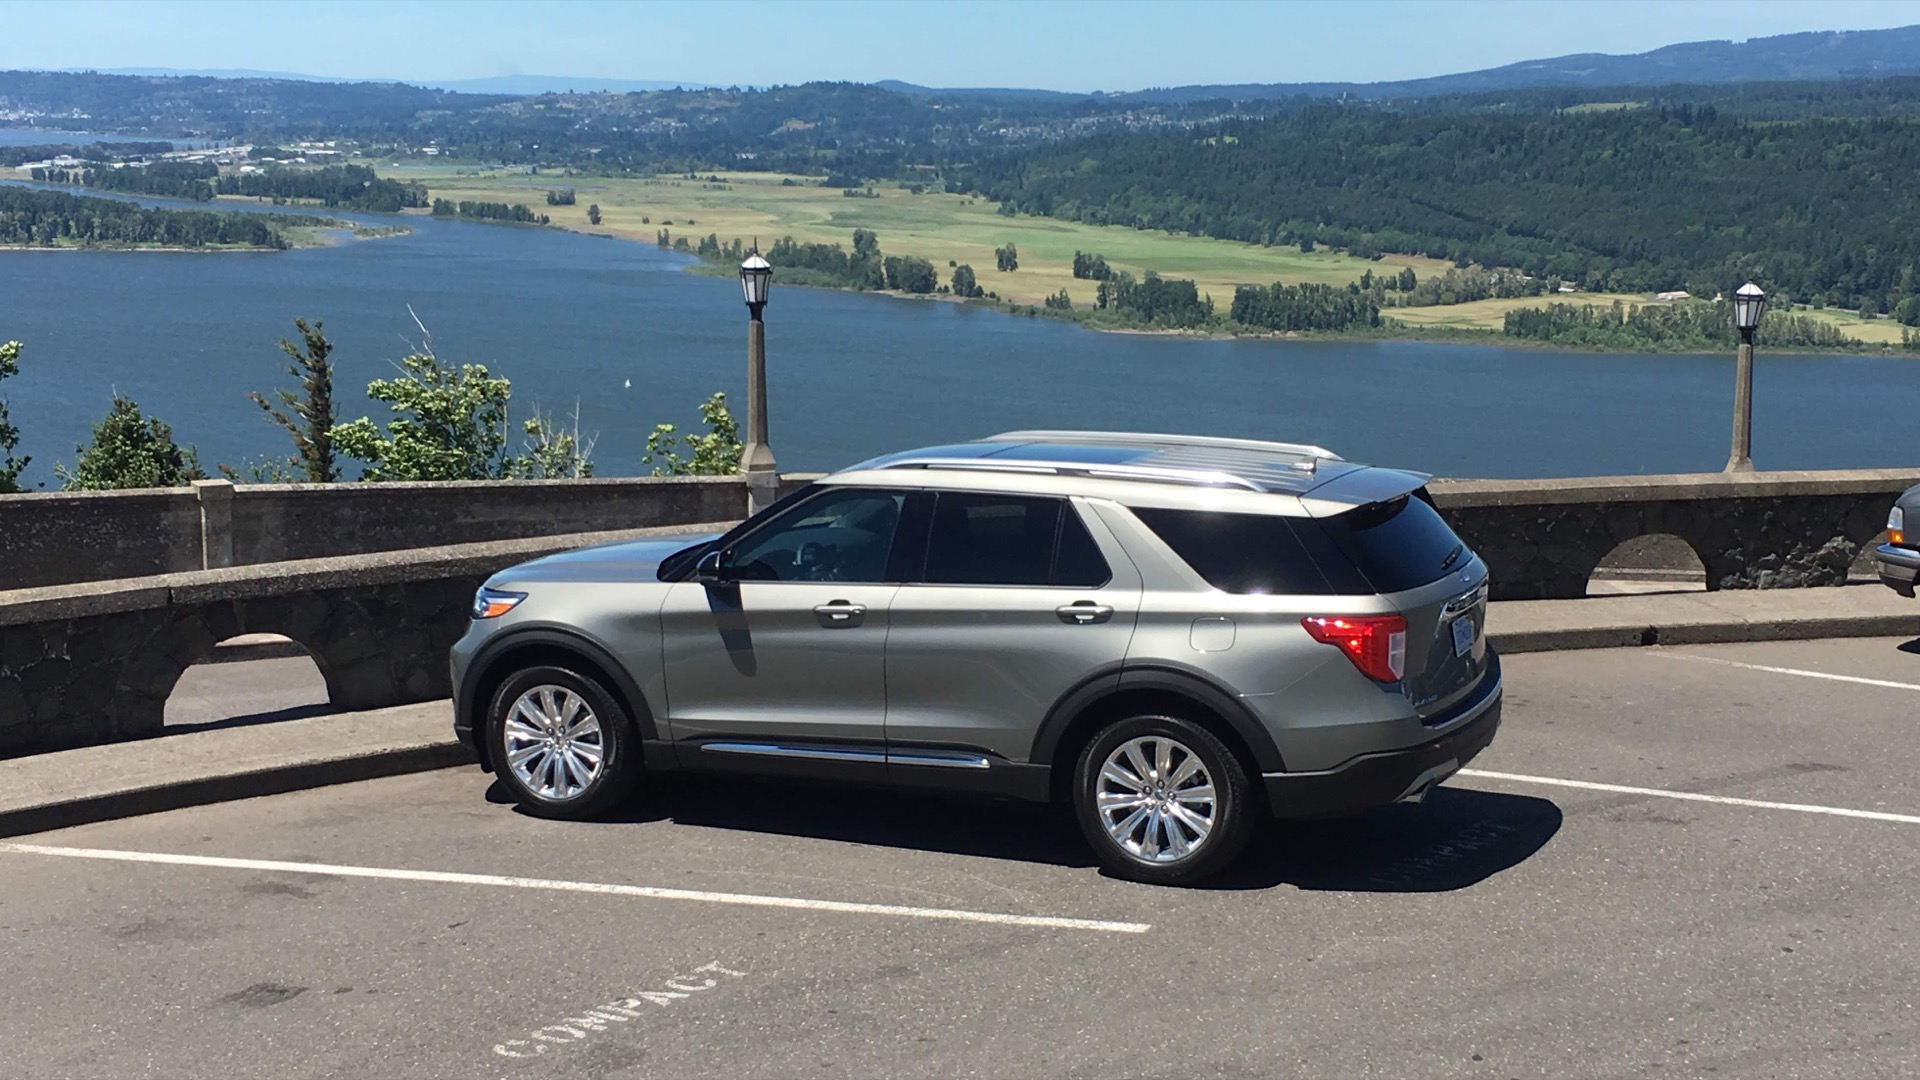 Best Gas Mileage Suv 2020 2020 Ford Explorer Hybrid first drive review: Muscle over mpg